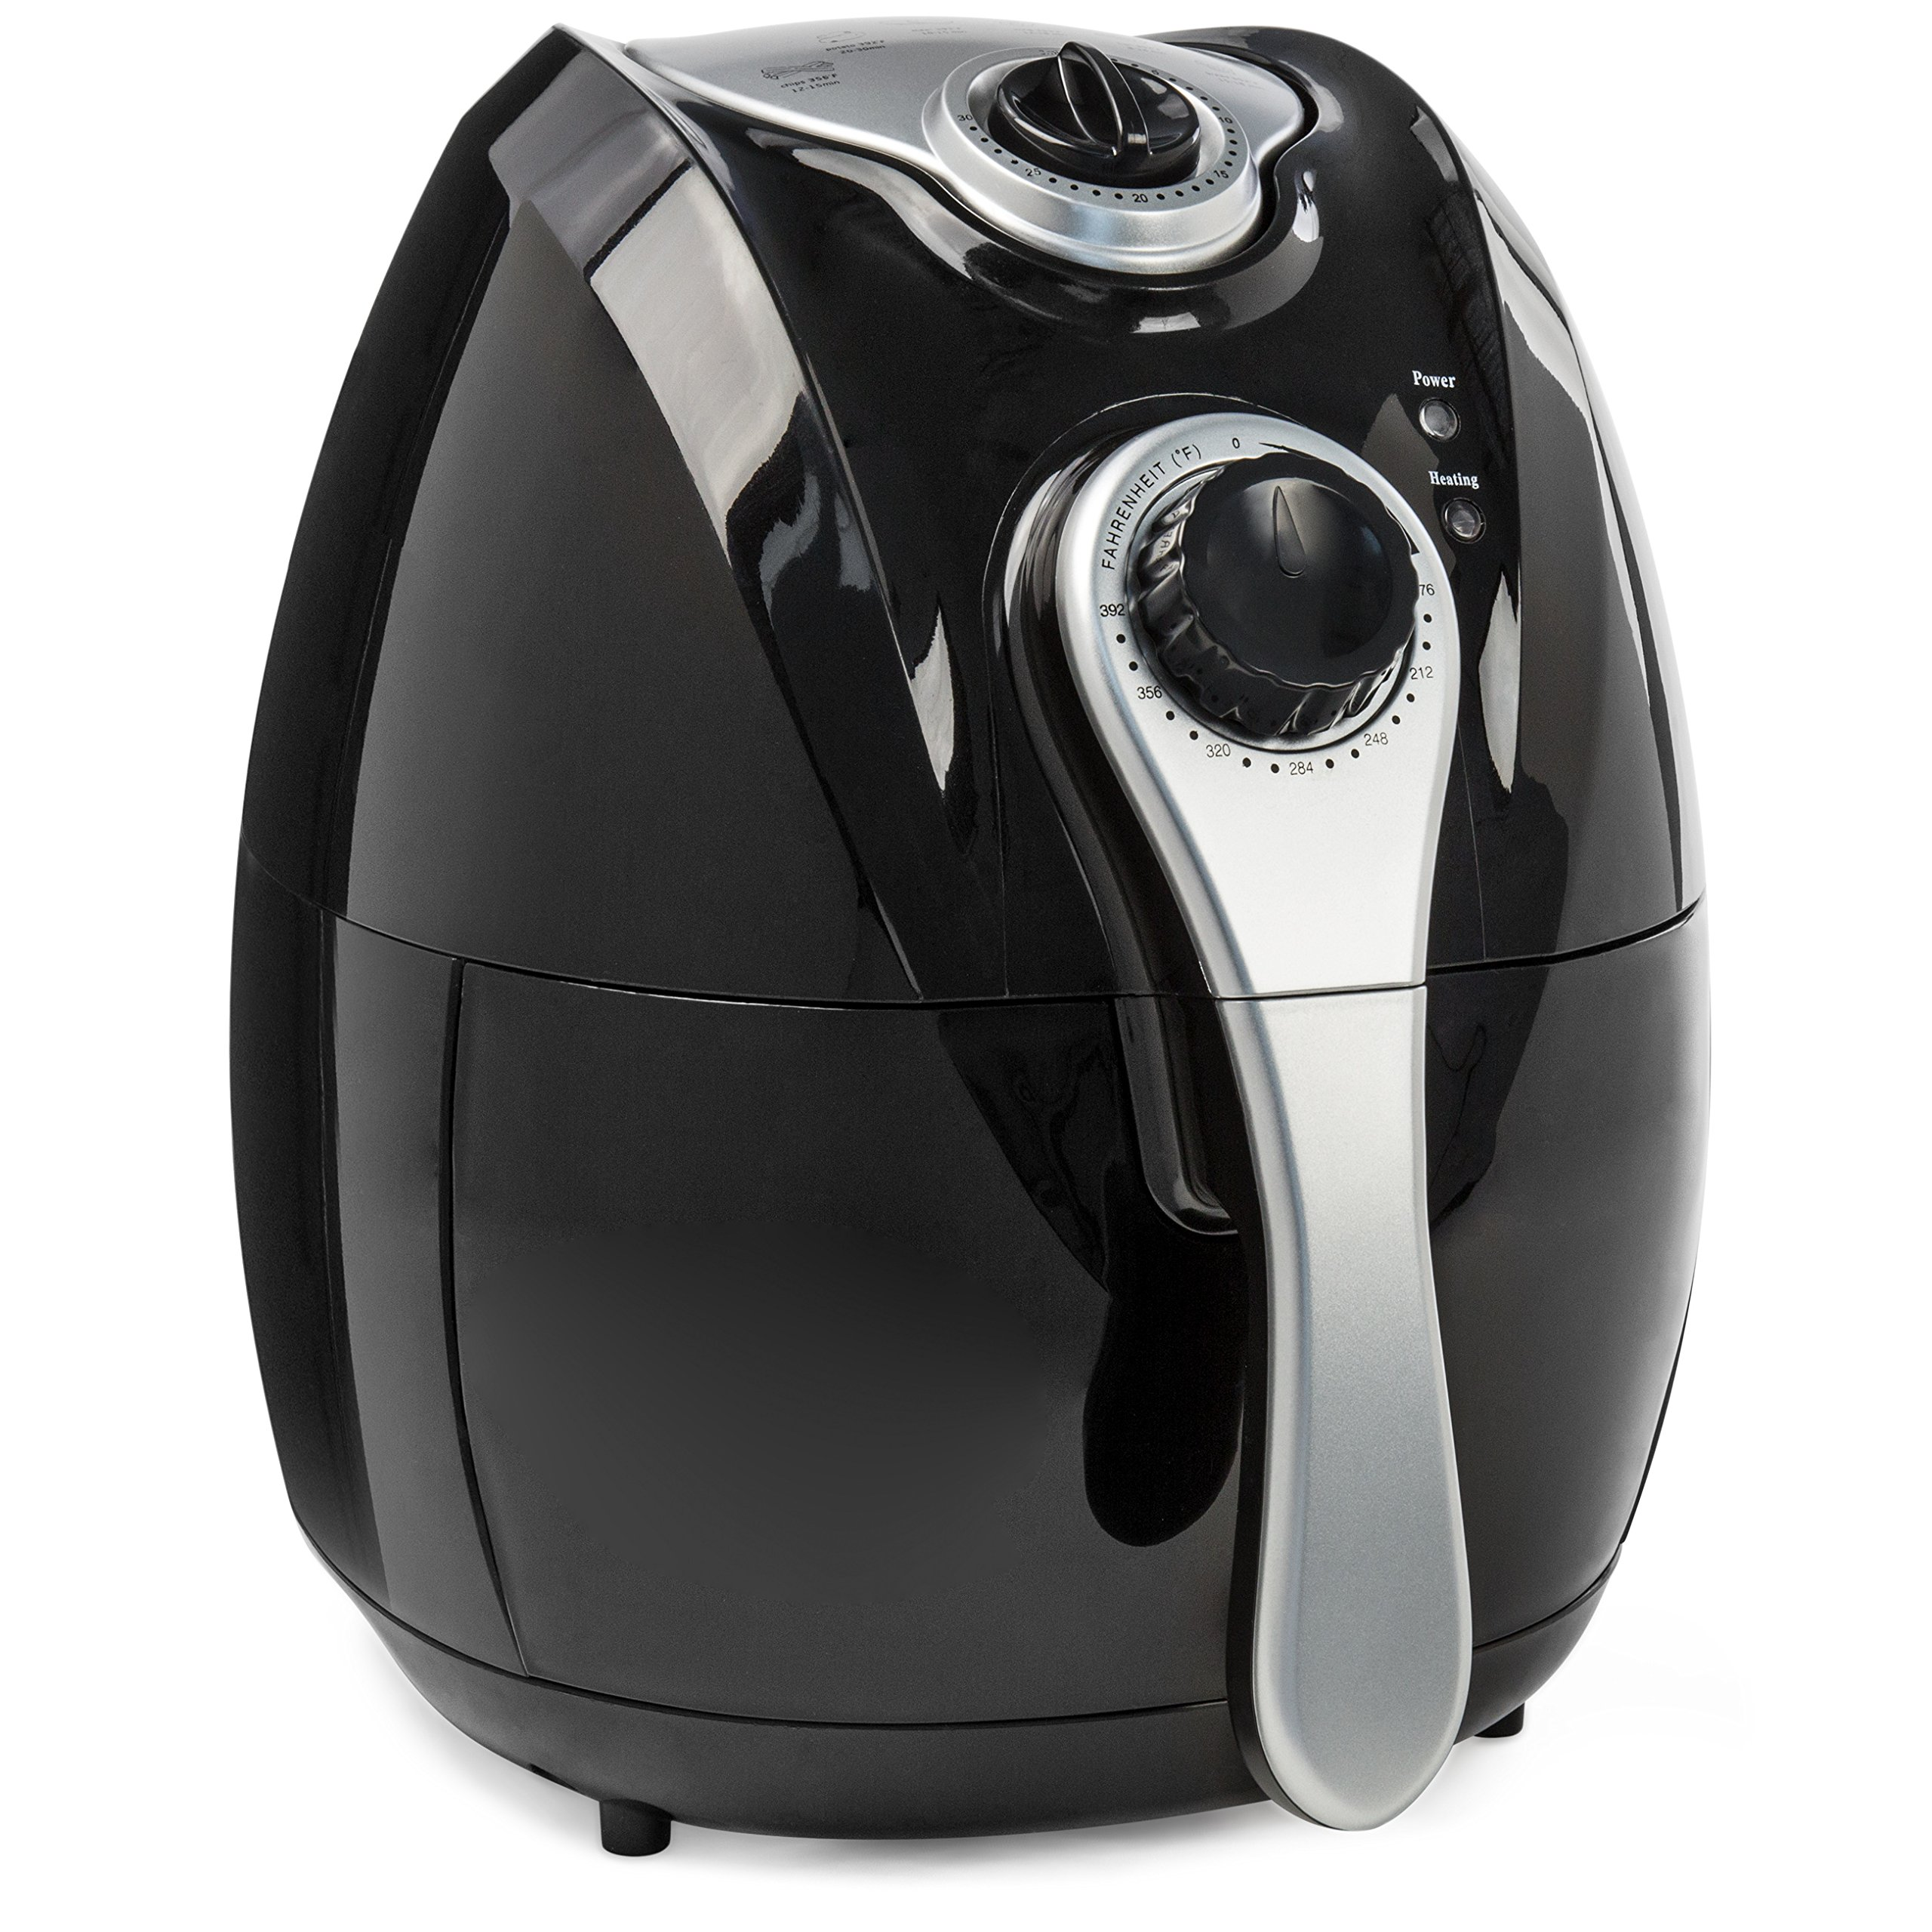 Best Choice Products 4.4qt Electric Air Fryer w/Rapid Air Circulation, Temp. Control, Timer, Detachable Handles - Black